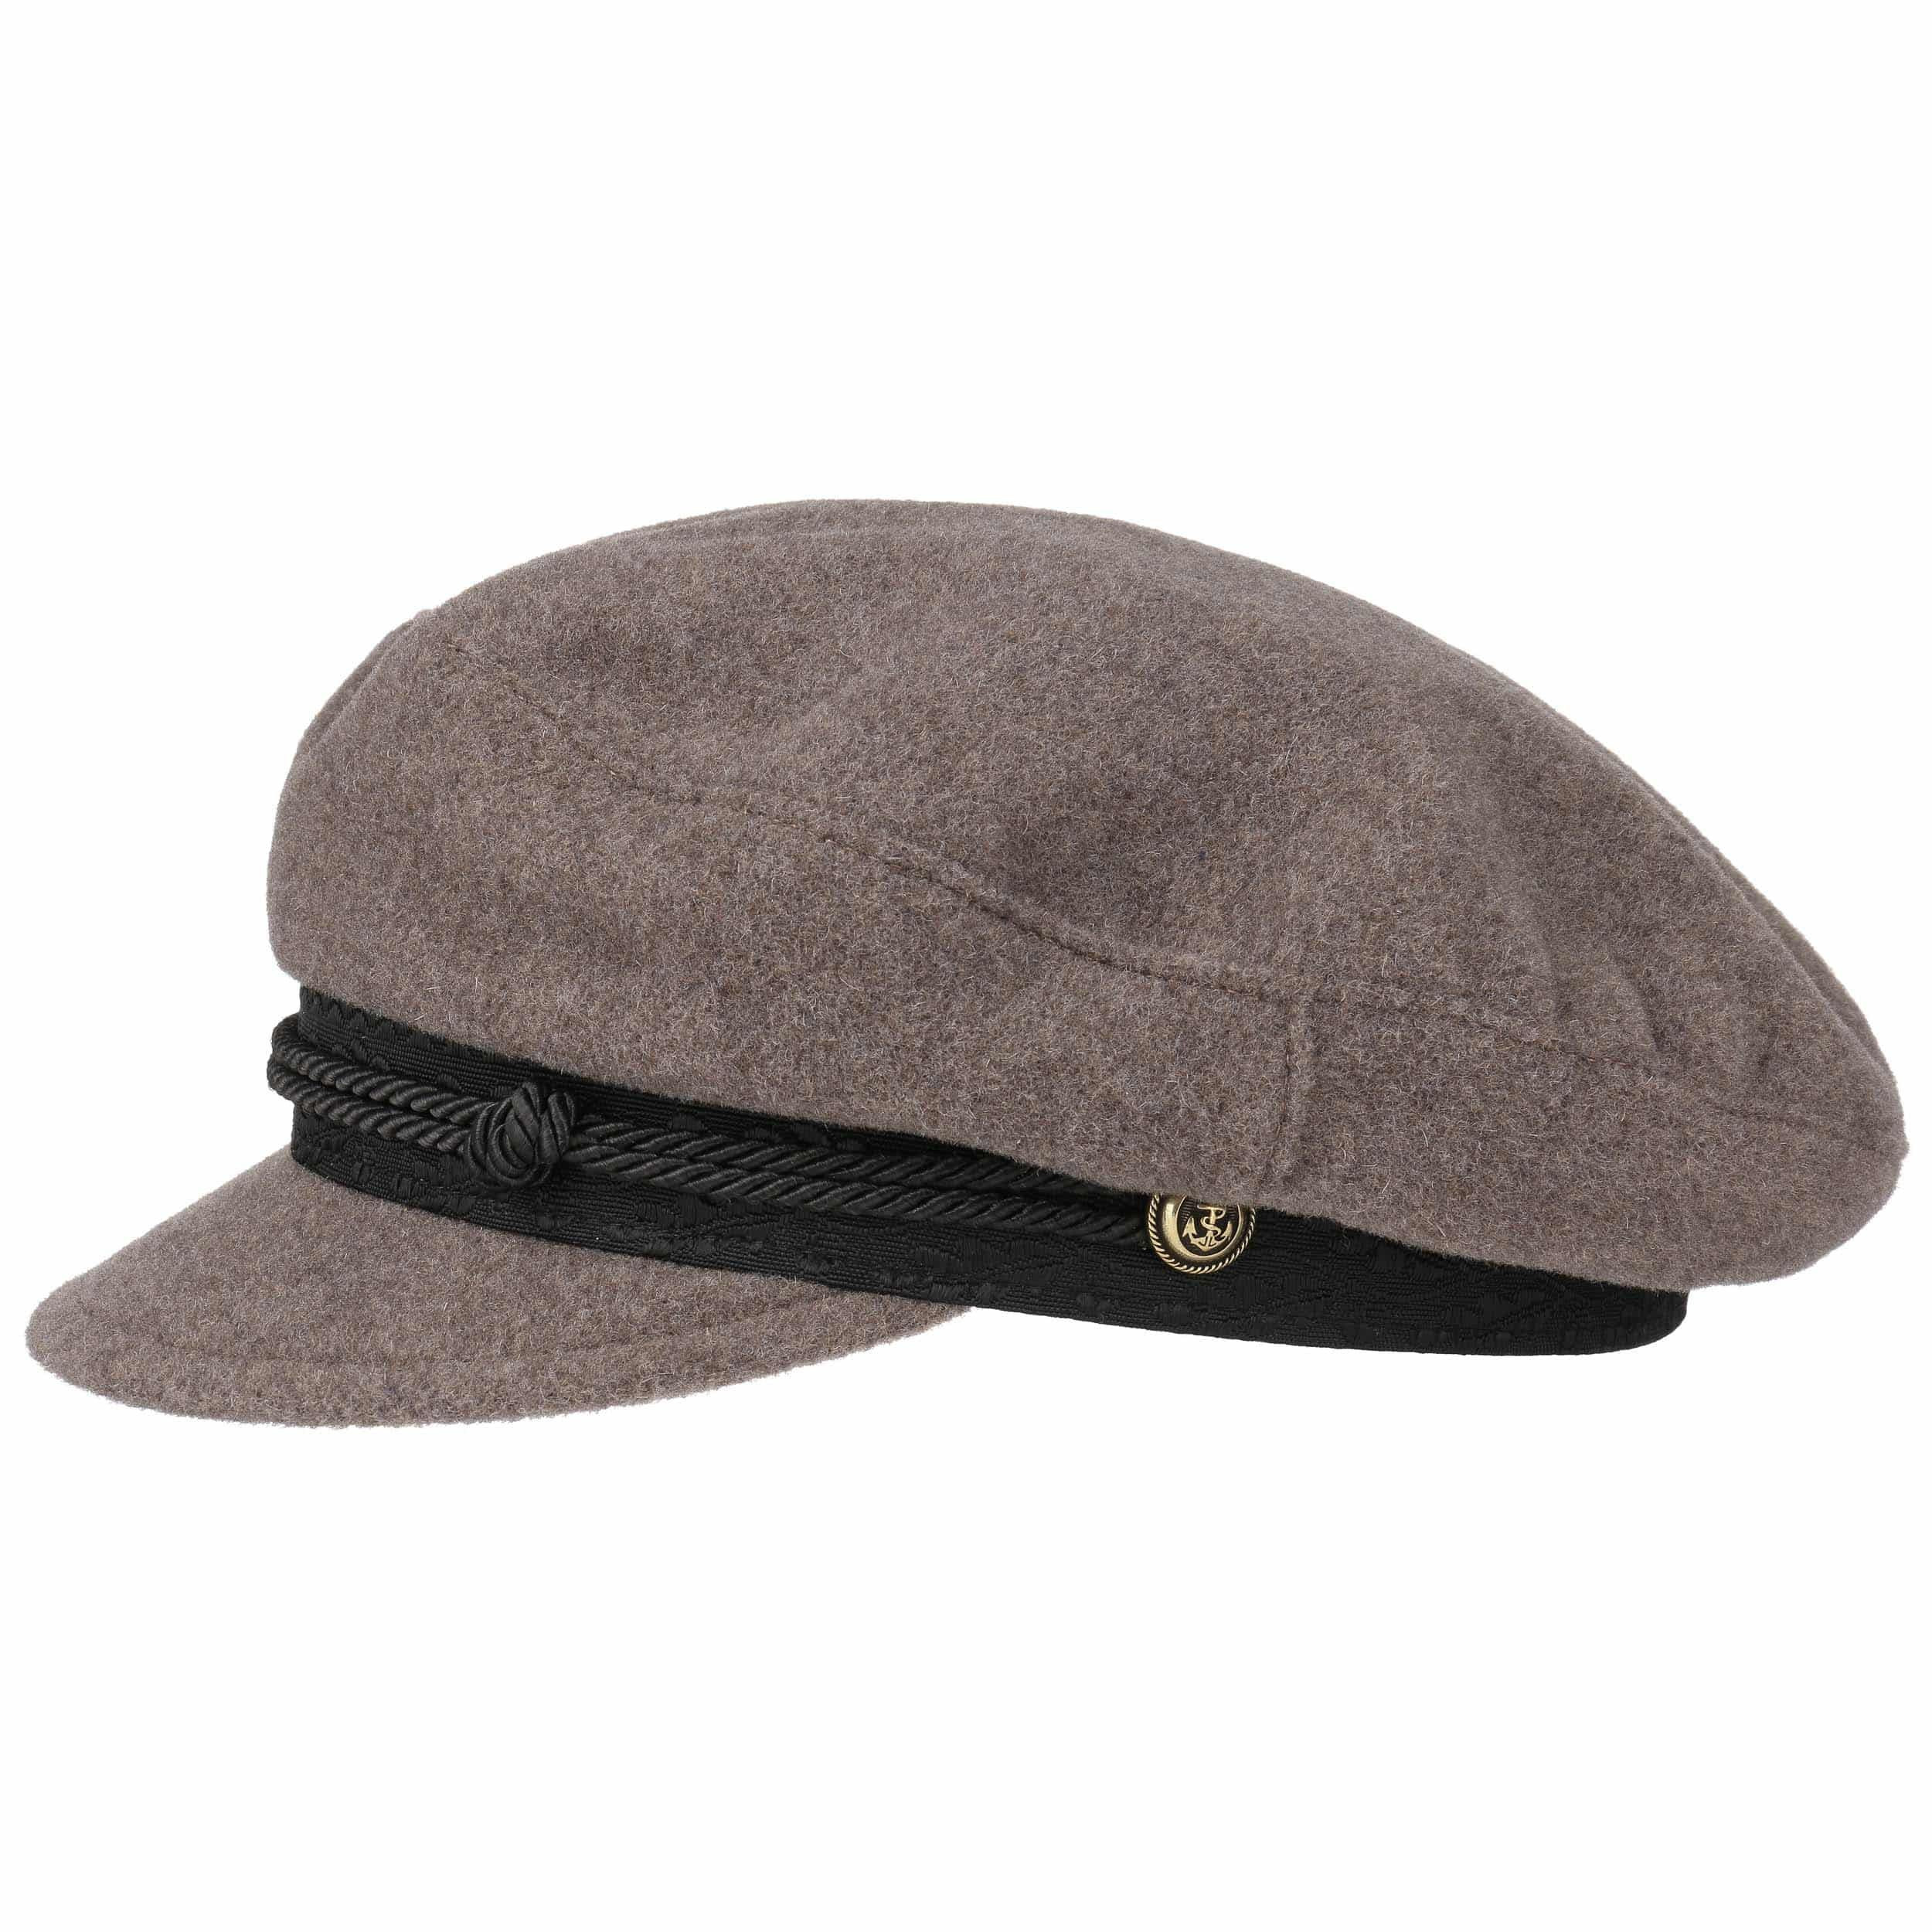 where can i buy exclusive shoes 100% high quality Stetson Wool Cashmere Riders Cap taupe 79,00 € Stetson.eu